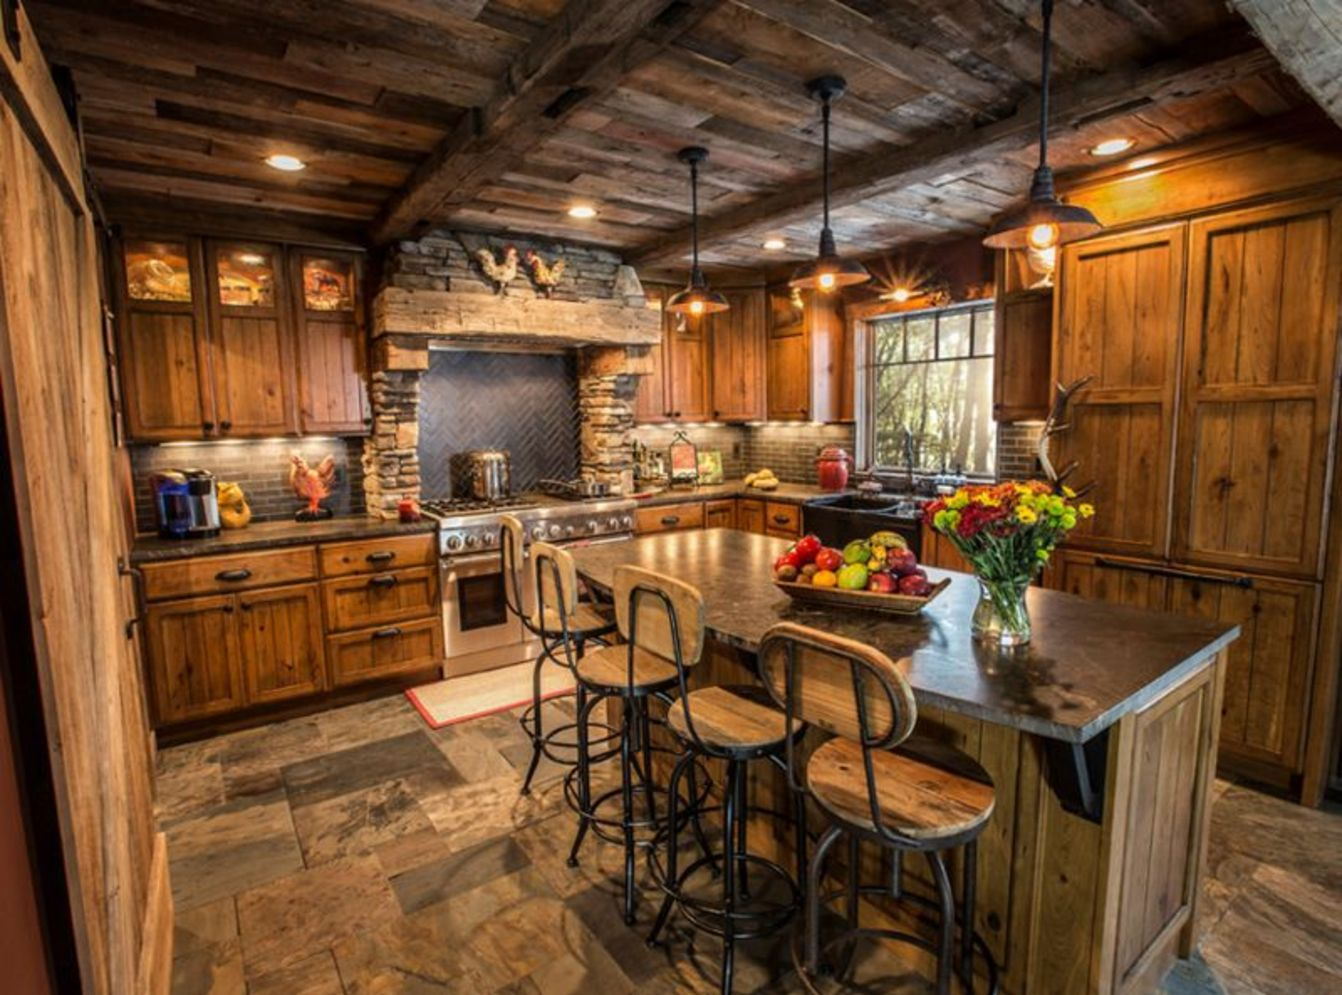 40 Kitchen Ideas Giving The Warm Cabin Designs In Amazing